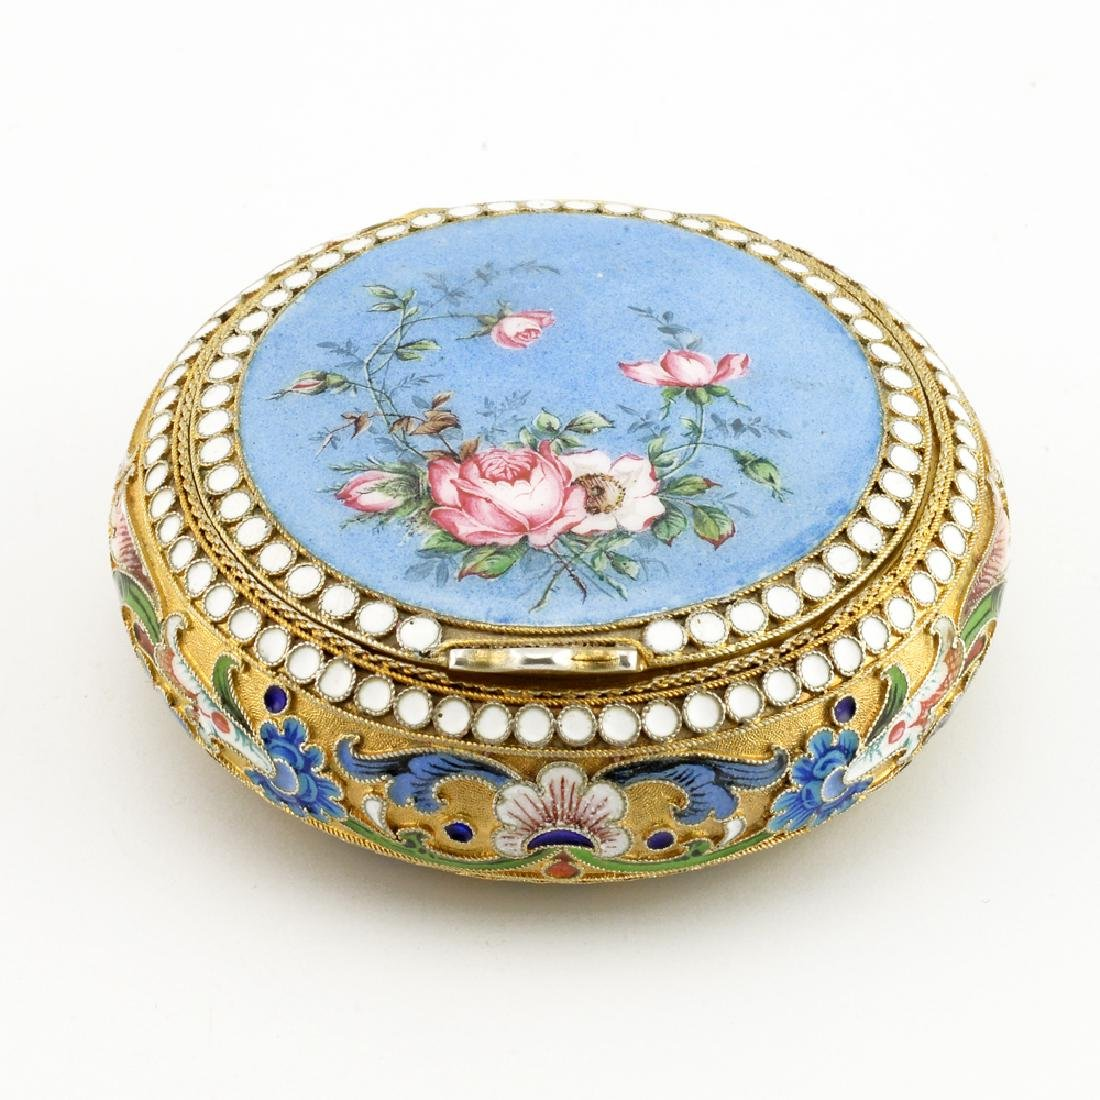 Russian silver, shaded and painted enamel floral case